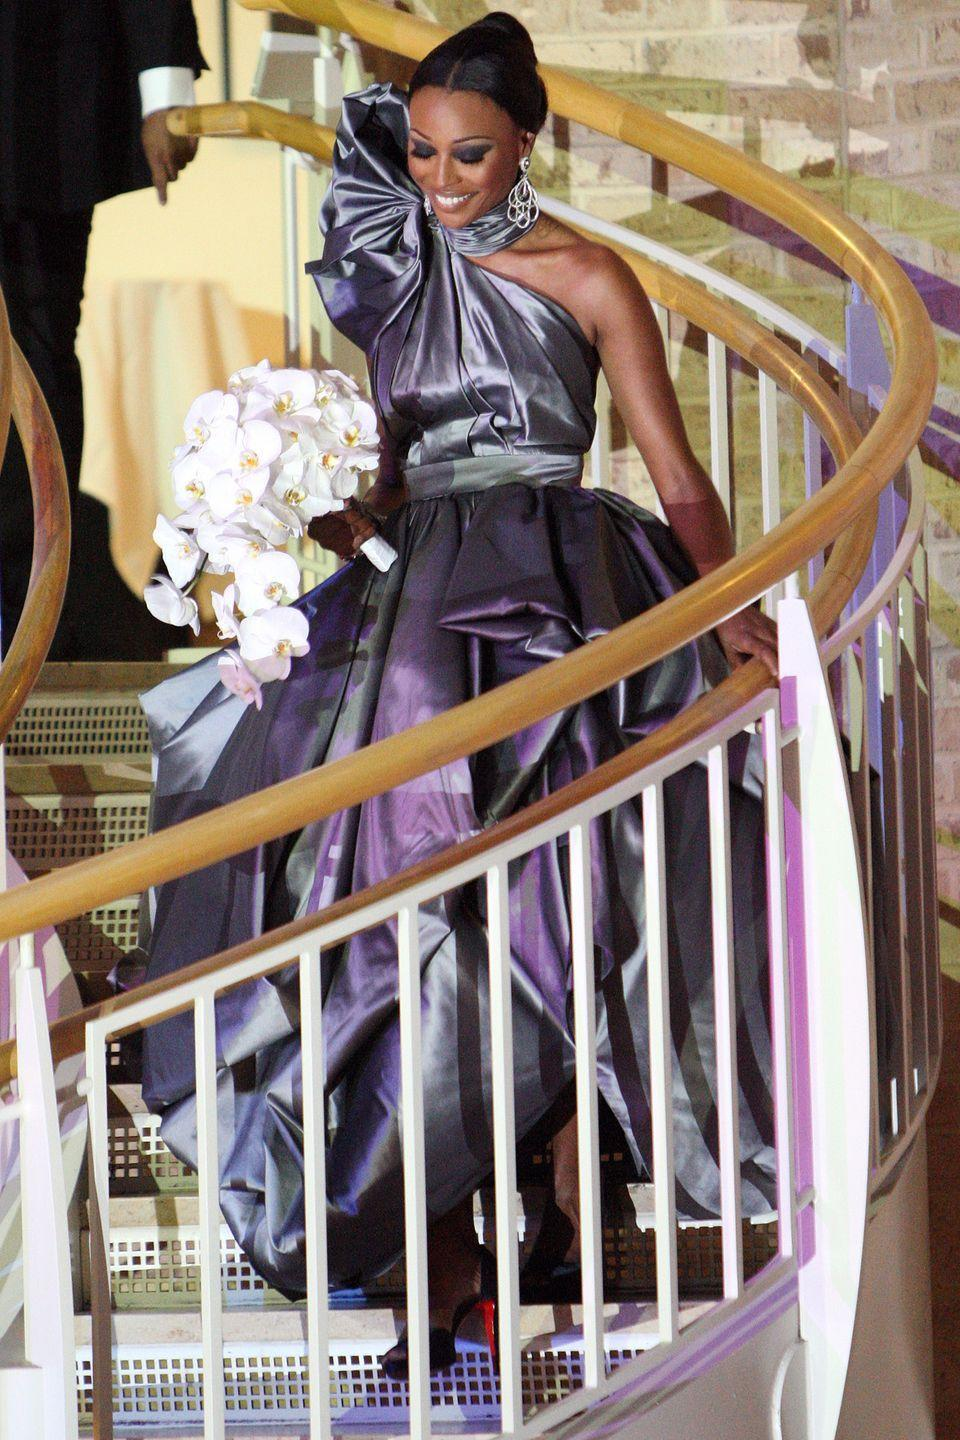 "<p>For the <em>Real Housewives of Atlanta </em>star's wedding to Peter Thomas, she went as far away from a white dress as she could, wearing instead a platinum-colored gown custom made by designer Rubin Singer. She said her modern venue, Fernbank Museum of Natural History in Atlanta, was <a href=""https://www.brides.com/story/real-housewives-atlanta-cynthia-bailey-wedding-dress-style-bridal-gown-budget"" rel=""nofollow noopener"" target=""_blank"" data-ylk=""slk:her inspiration"" class=""link rapid-noclick-resp"">her inspiration</a>.</p>"